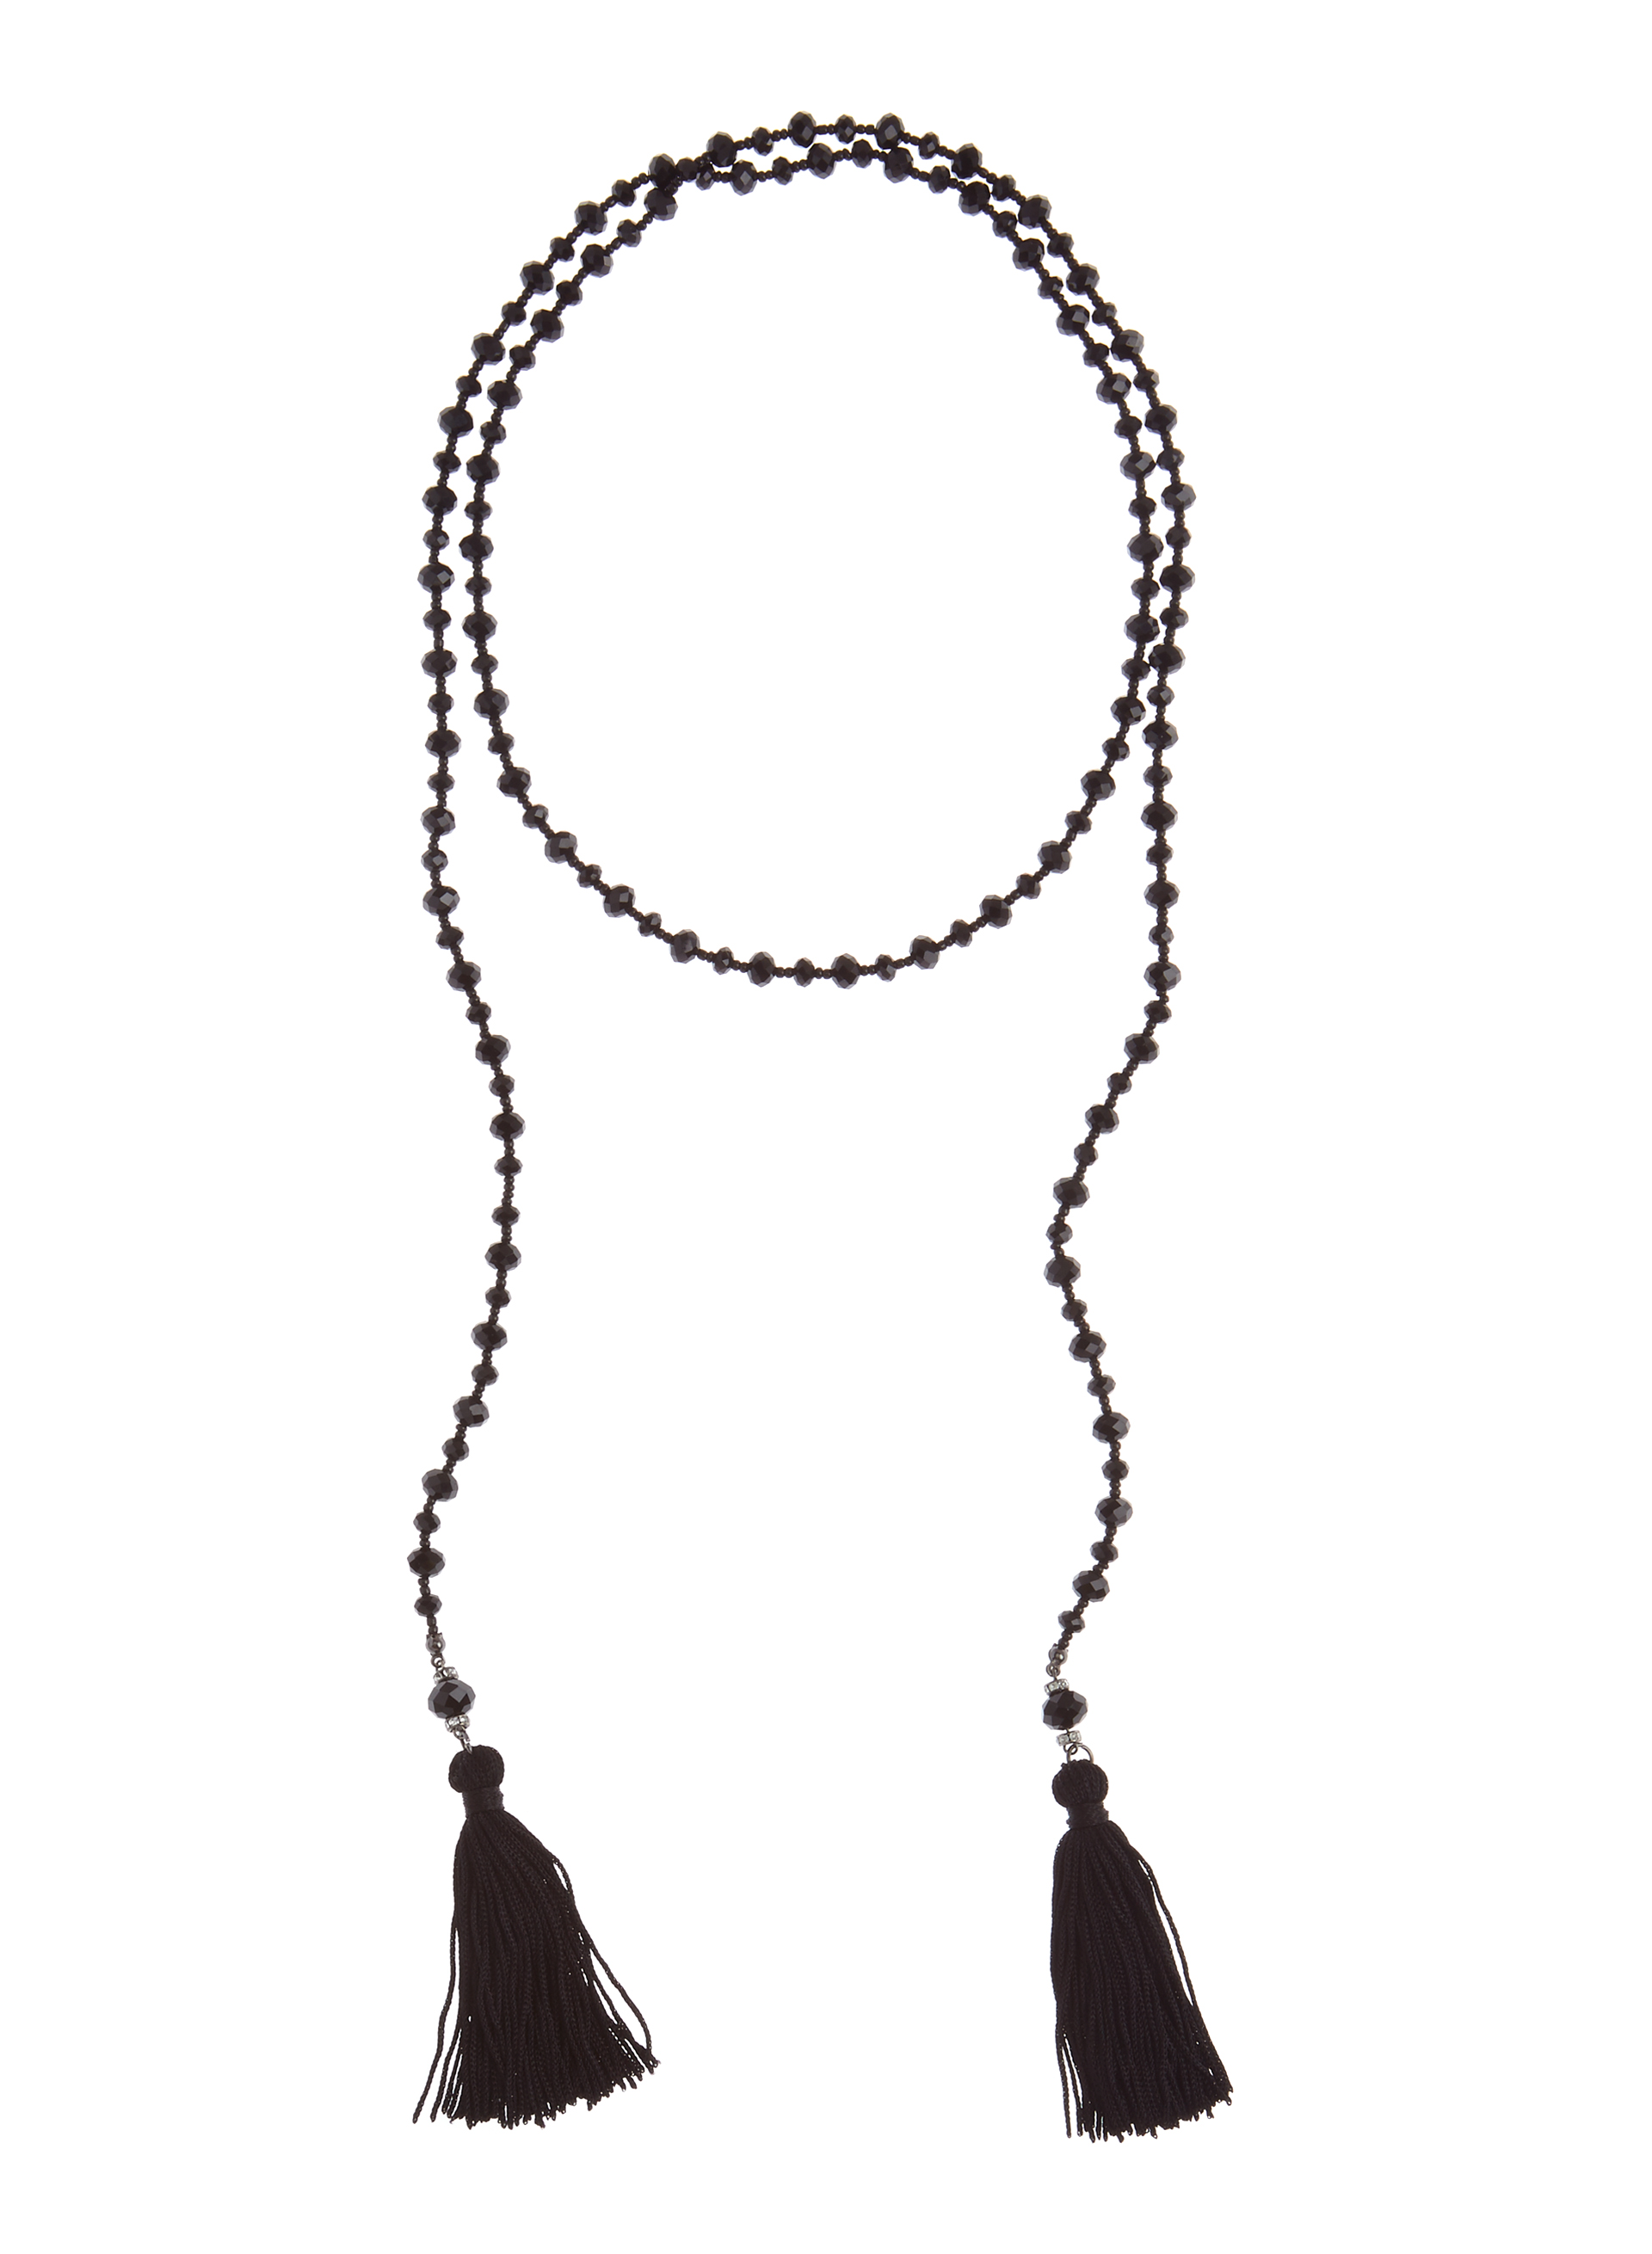 Tassled Lariat Necklace, Black, hi-res